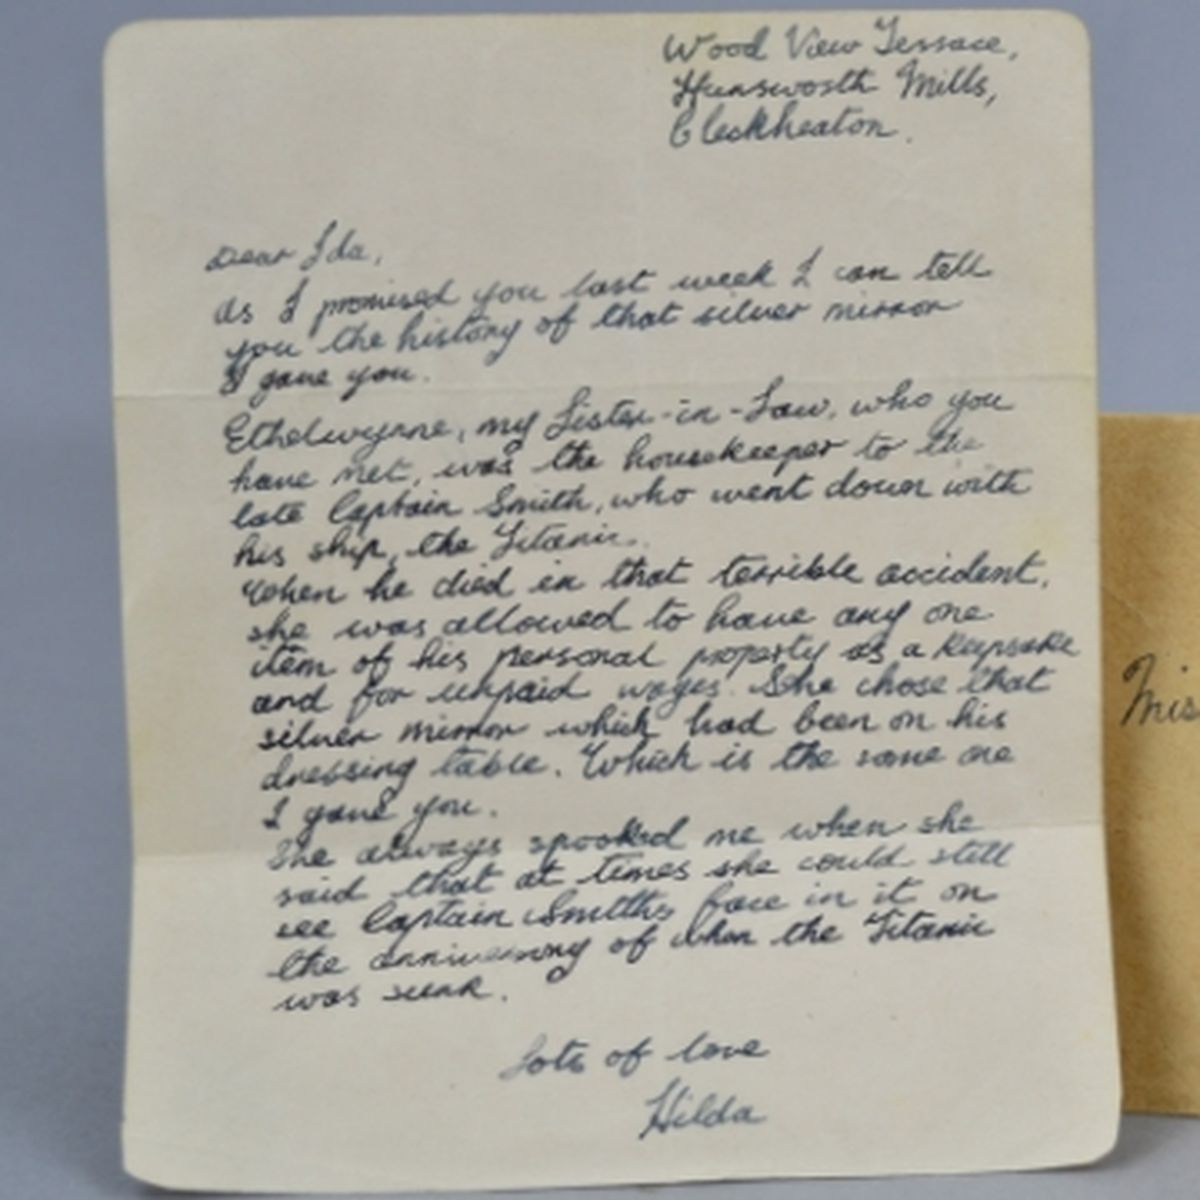 The letter explaining the mirror's importance